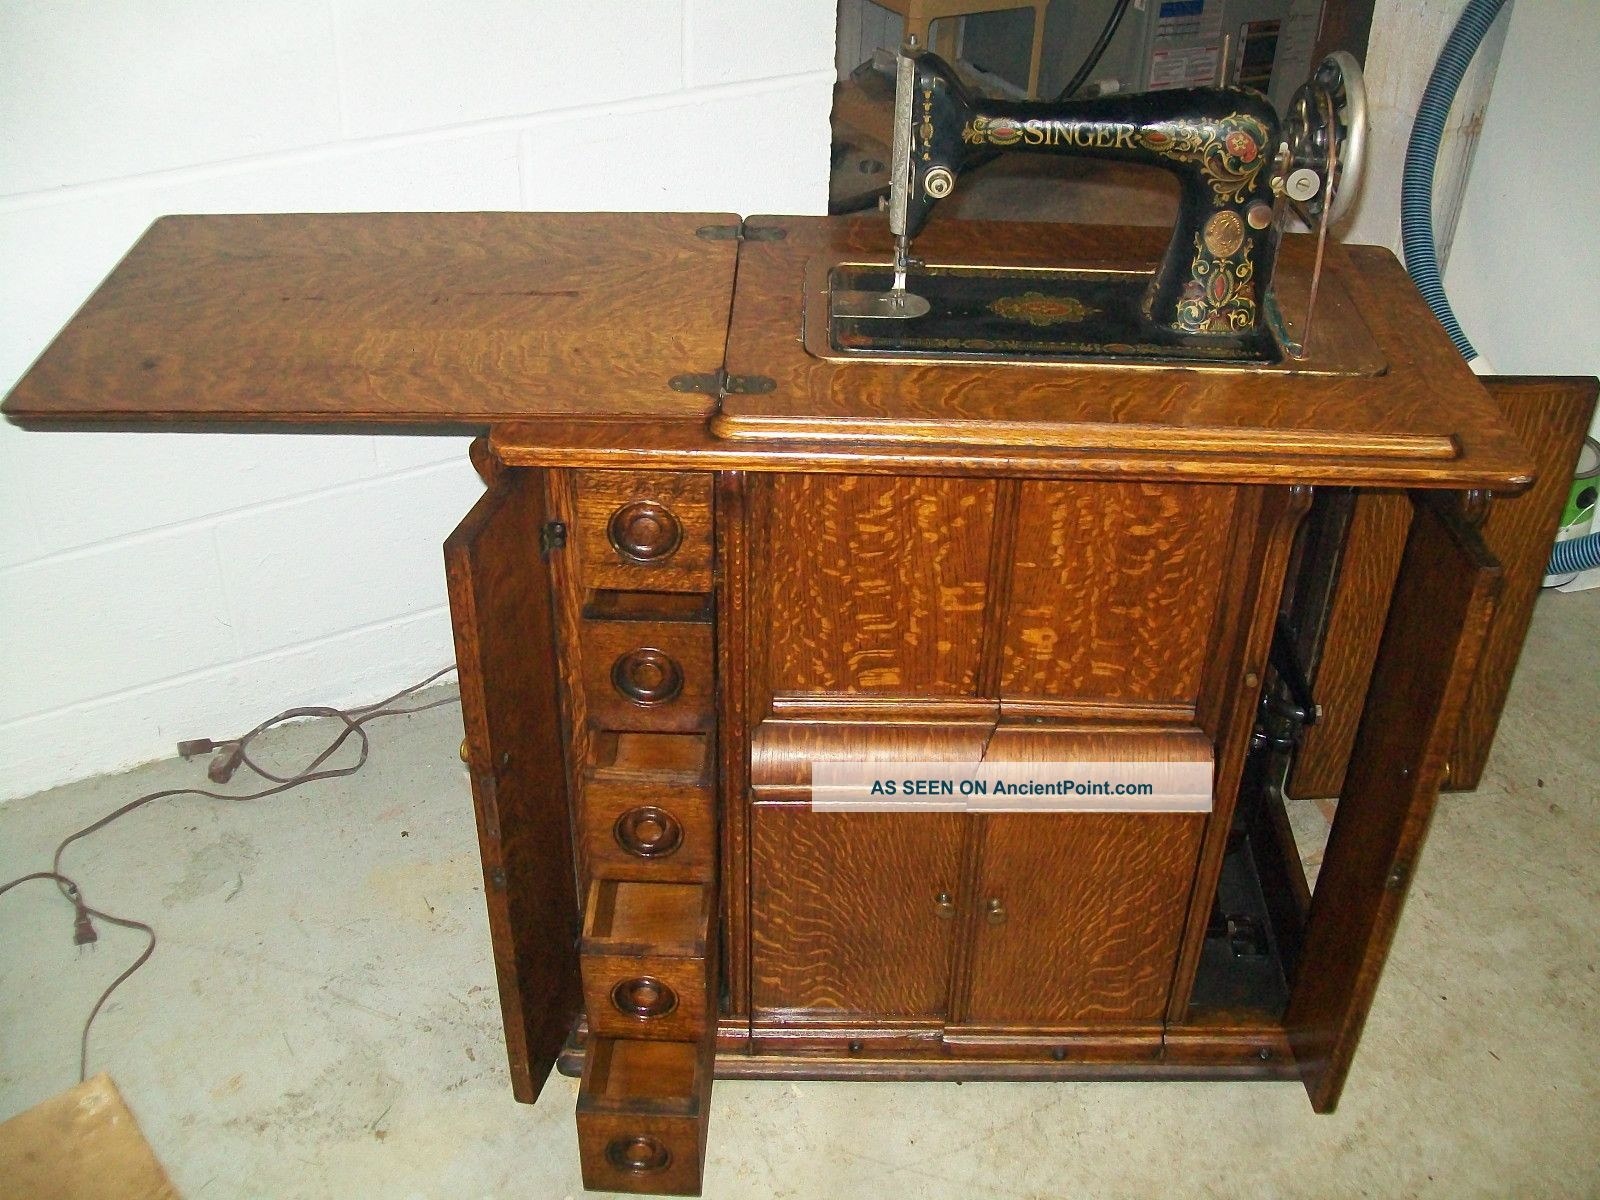 1920 Singer Sewing Machine And Parlor Cabinet,  Model 66,  Antique,  Vintage Sewing Machines photo